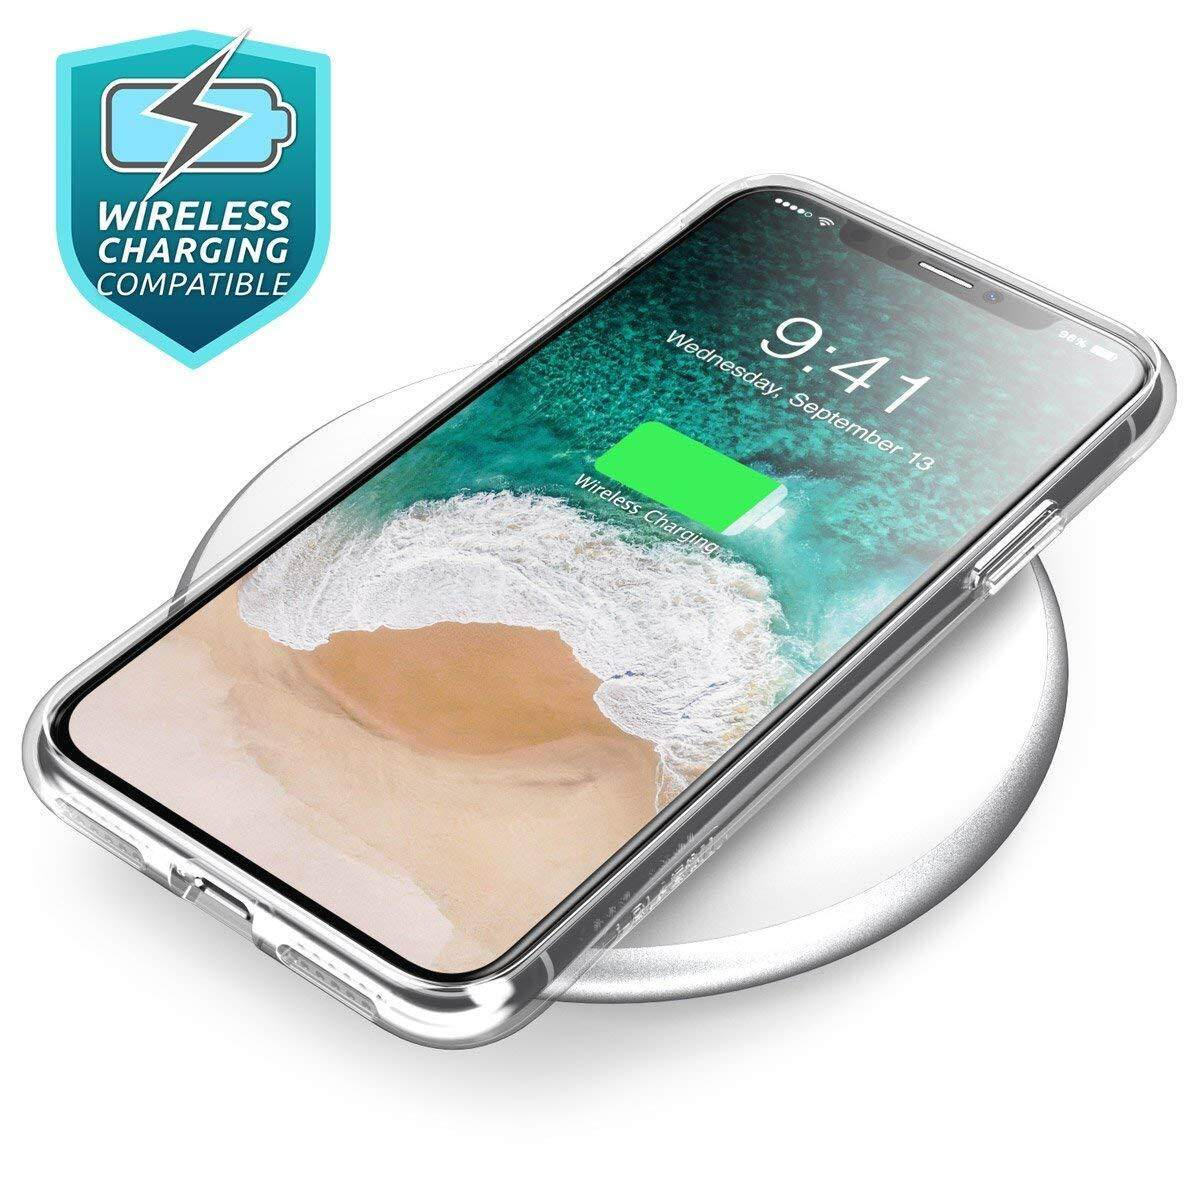 8a990e8676 Without adding a bunch of weight or bulk, this case offers premium  protection against everyday wear and tear.